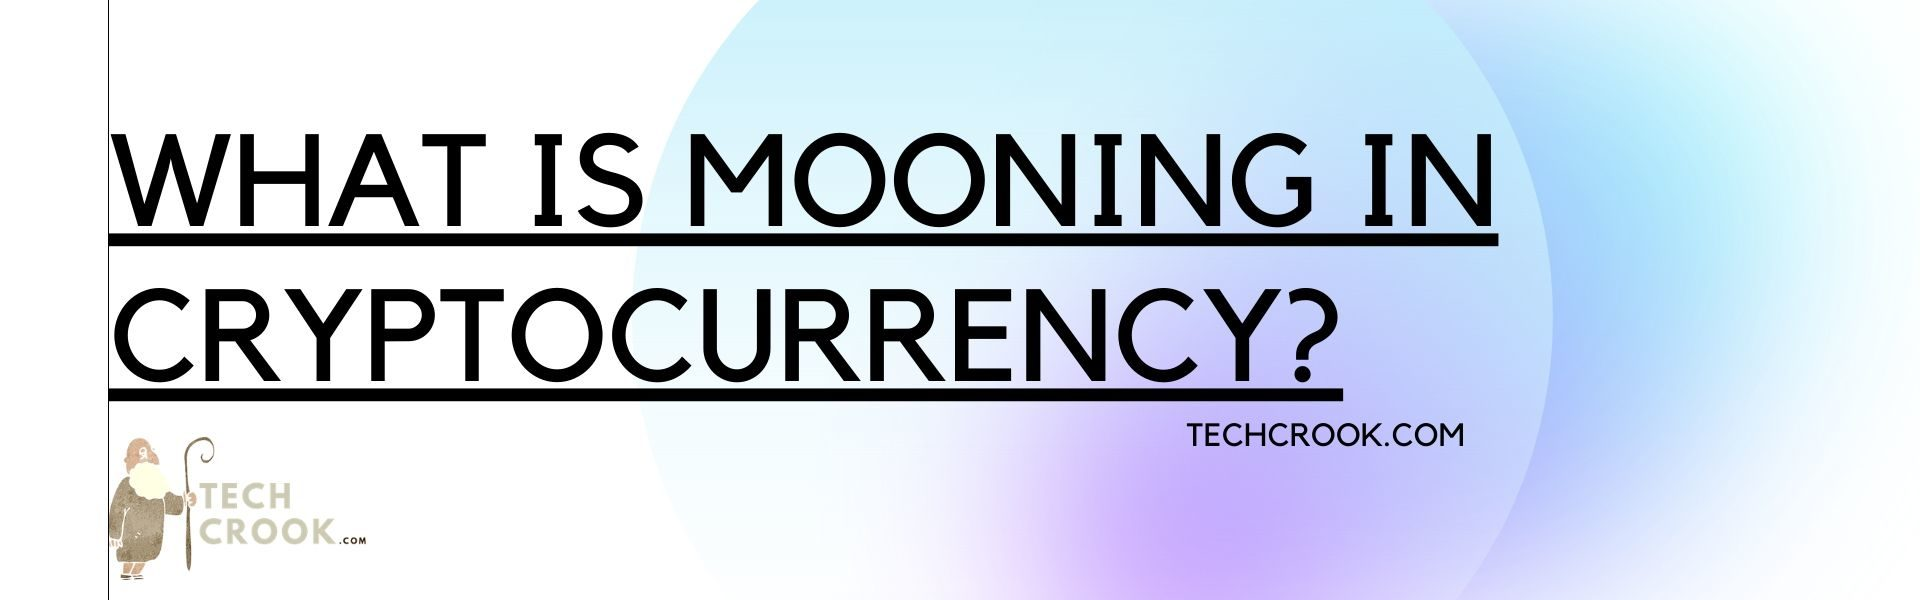 mooning meaning in cryptocurrency